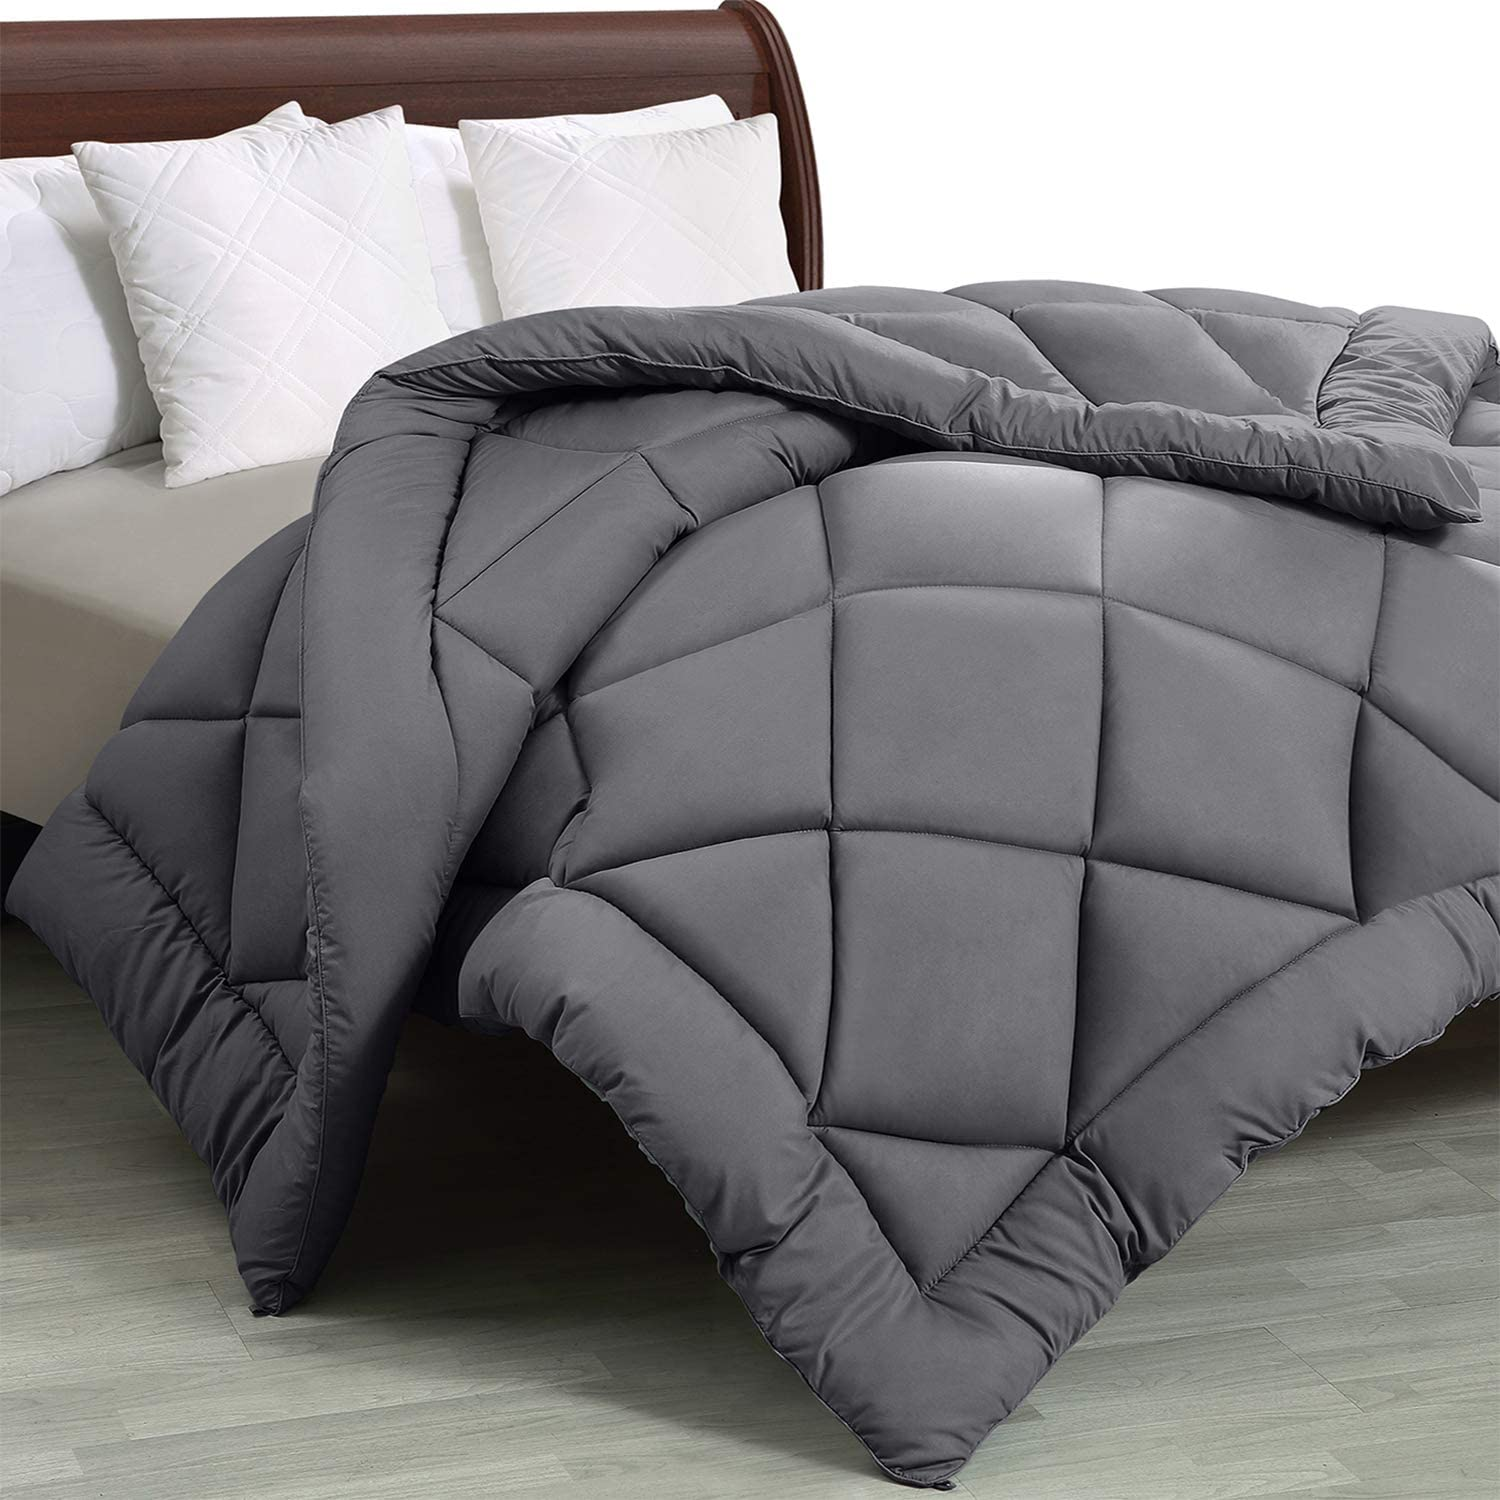 Utopia Bedding - All Season Quilted Duvet Insert - Goose Down Alternative Comforter - Full/Queen - Grey